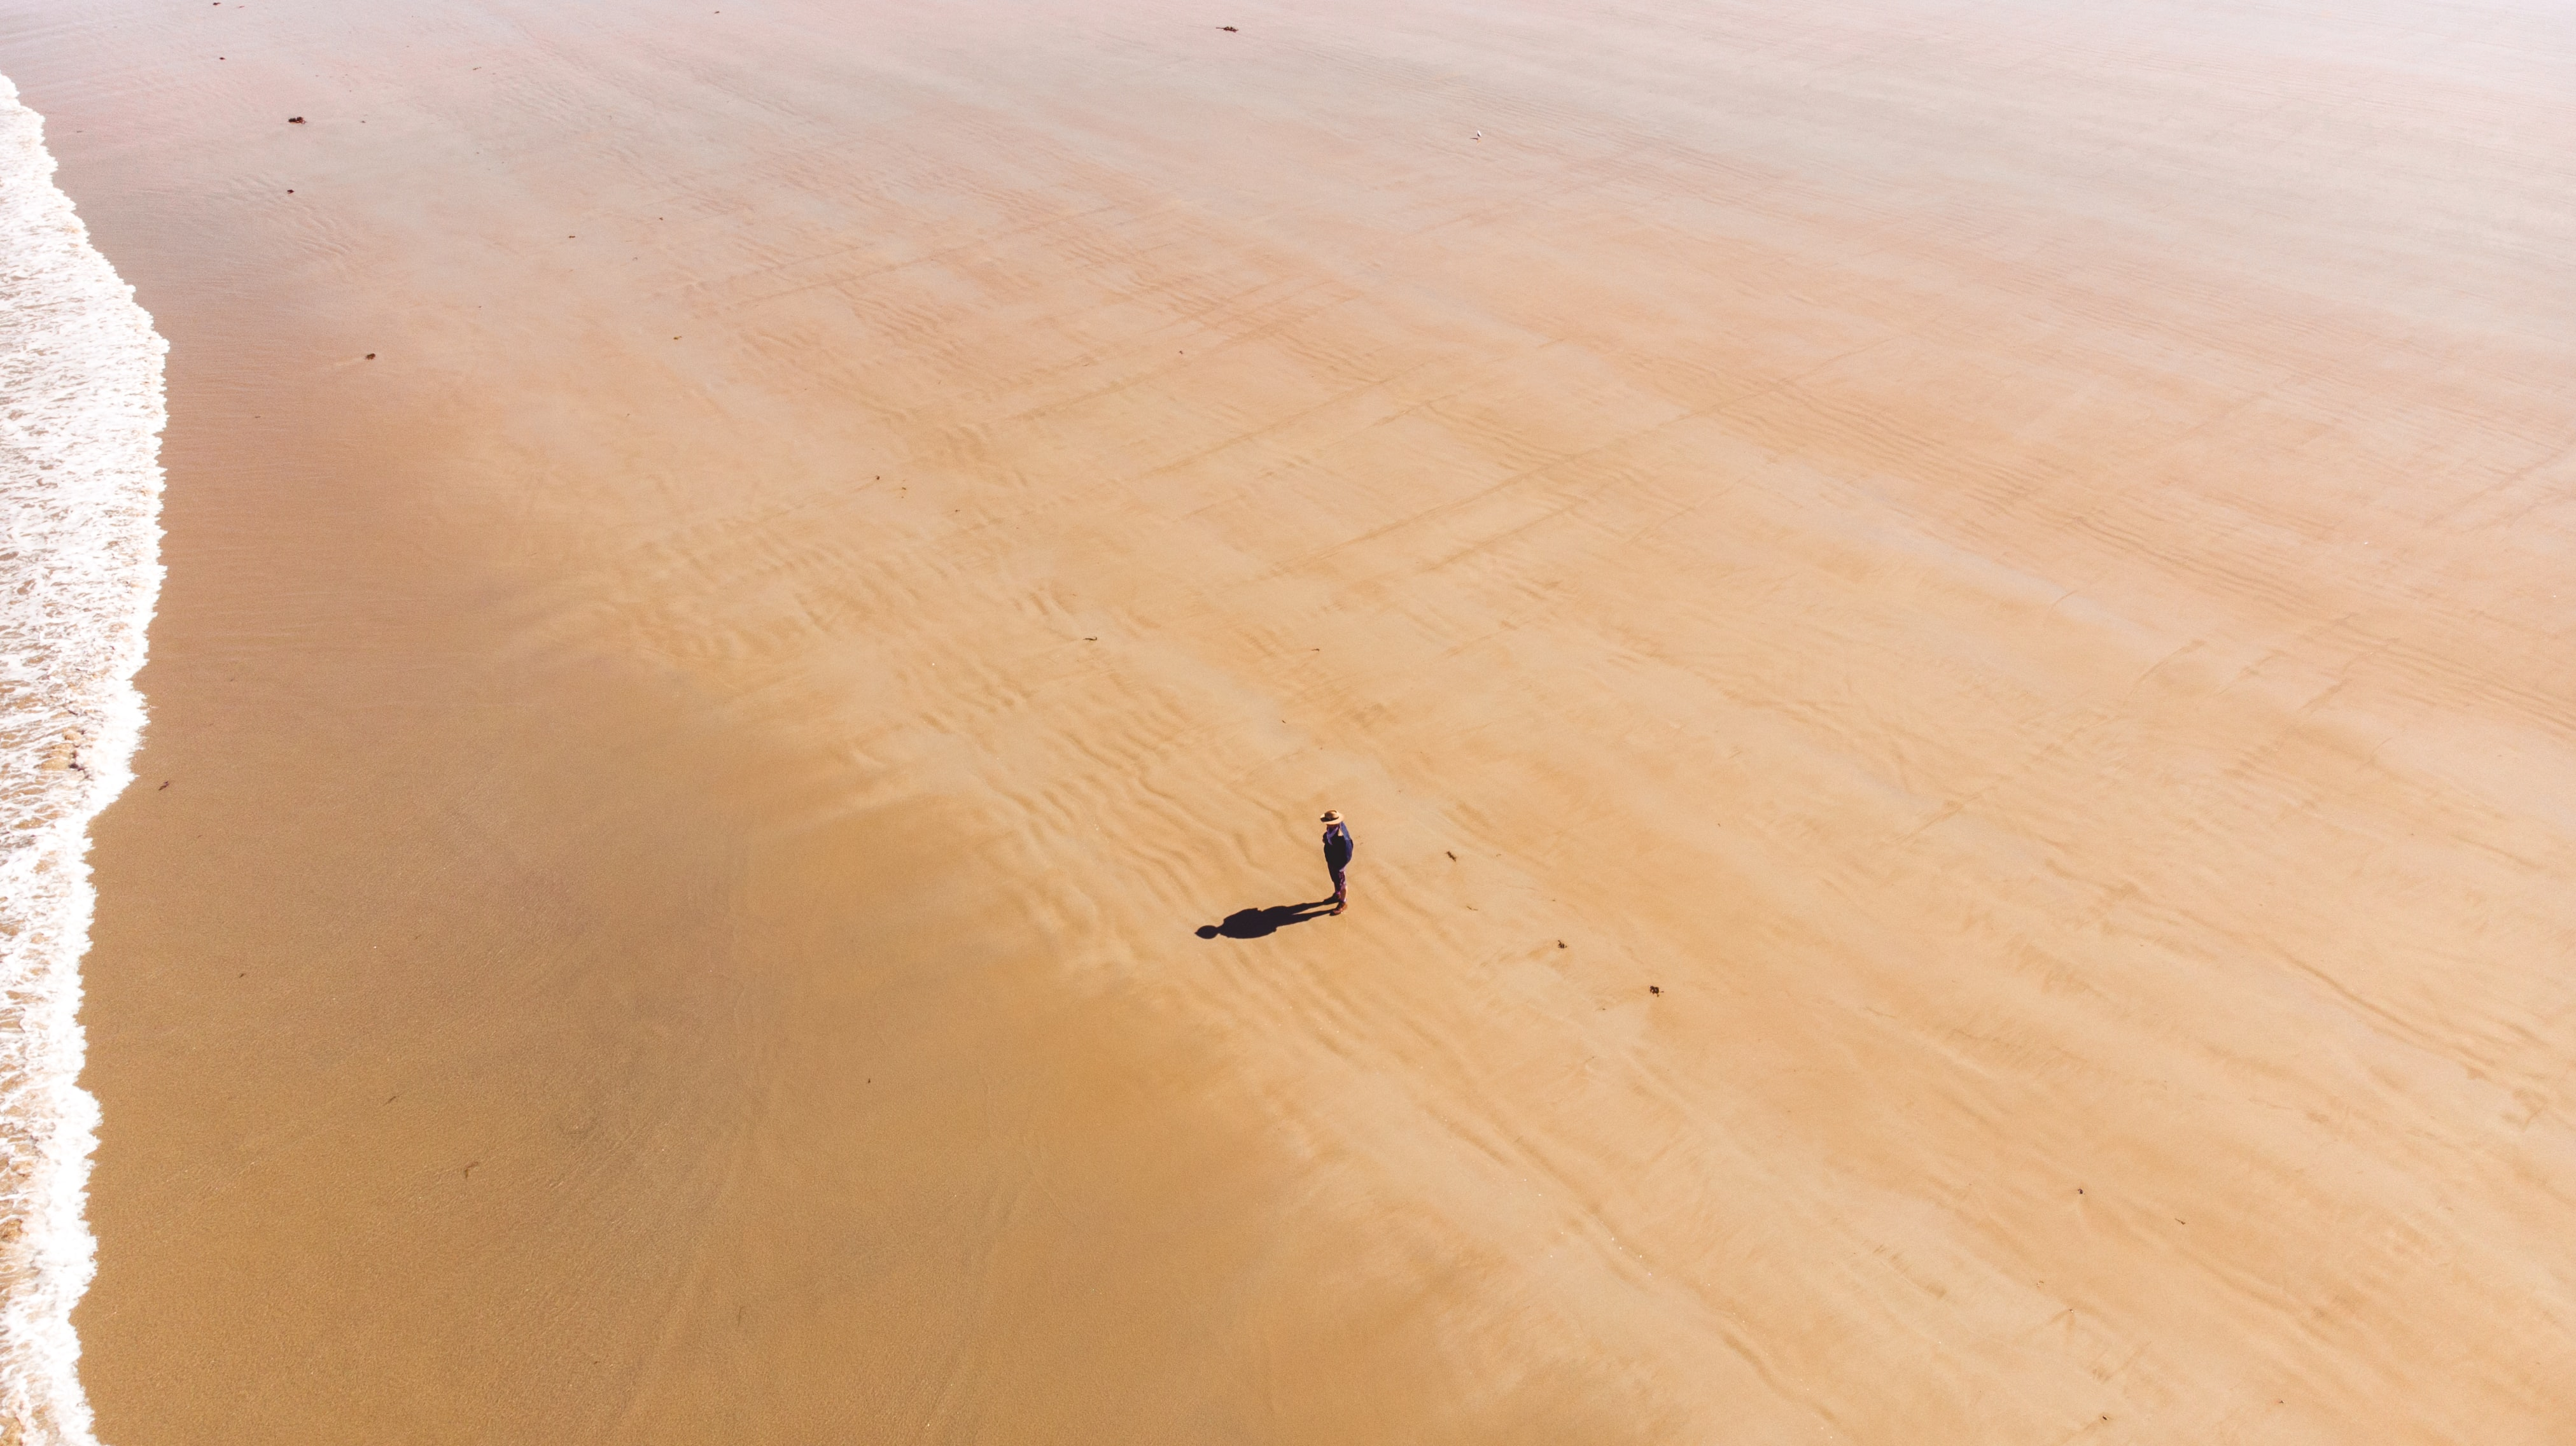 person waling on brown sand beach during daytime